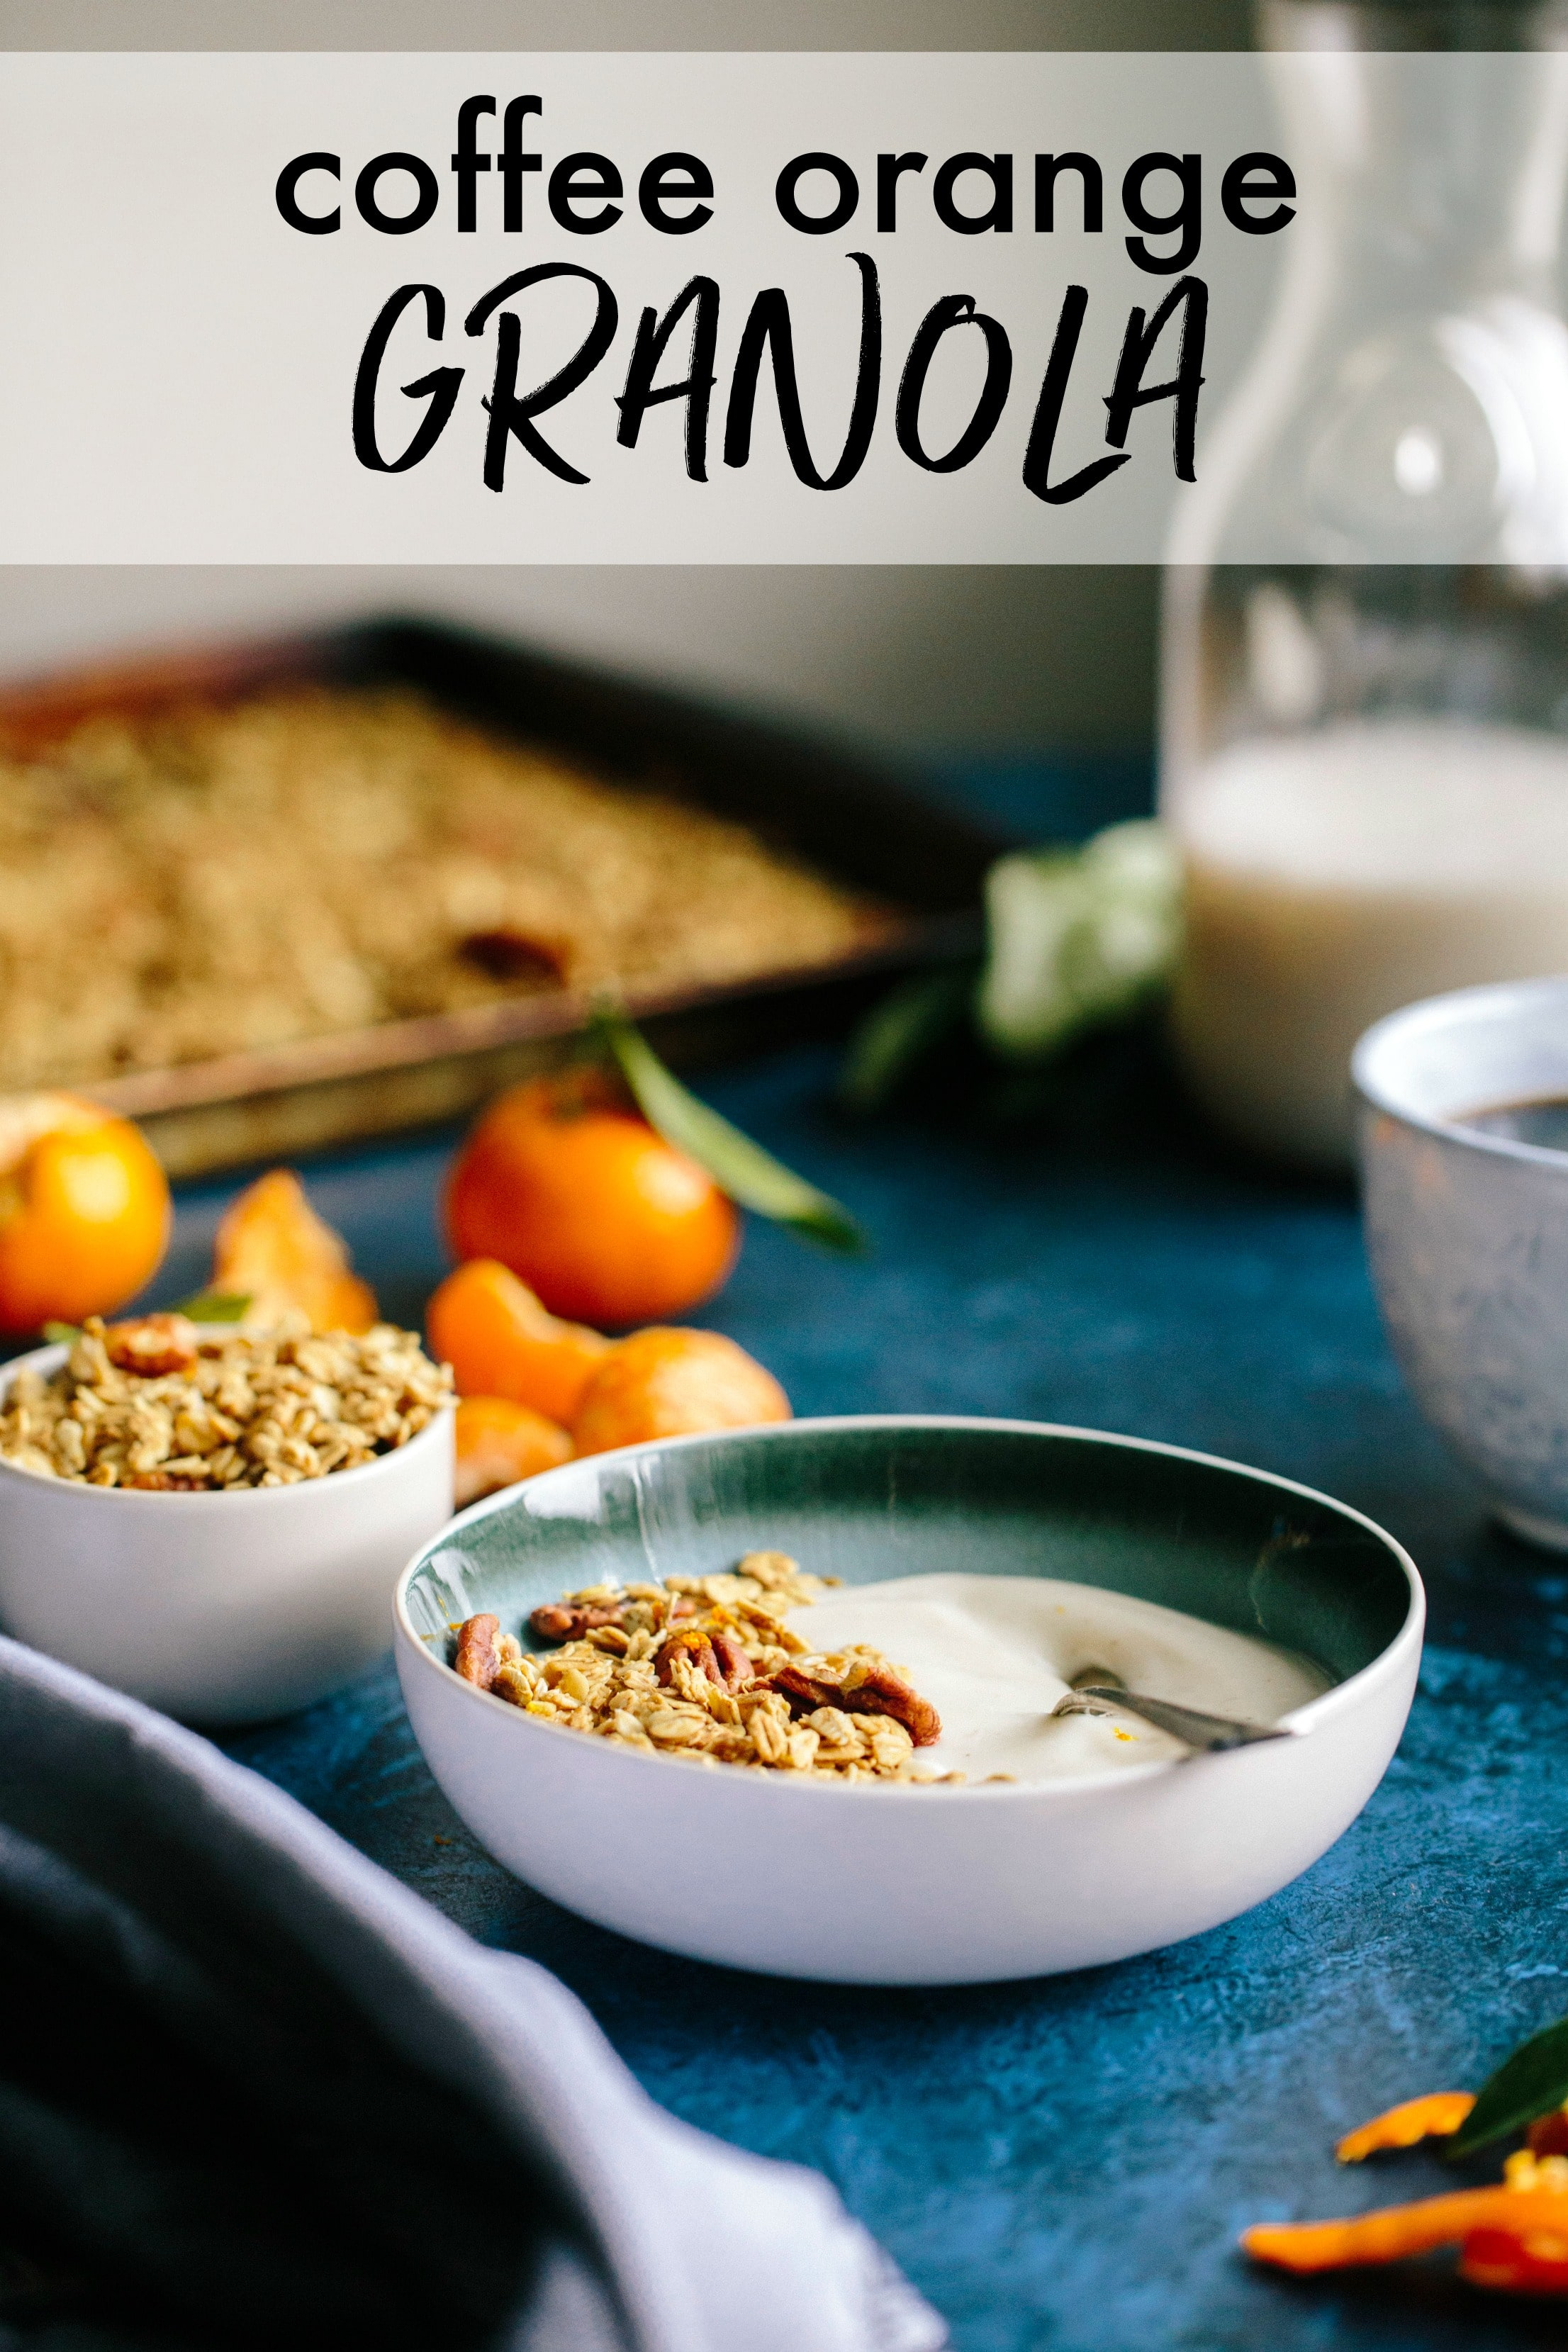 A bowl of granola with a baking sheet of granola behind it and a jar of milk.